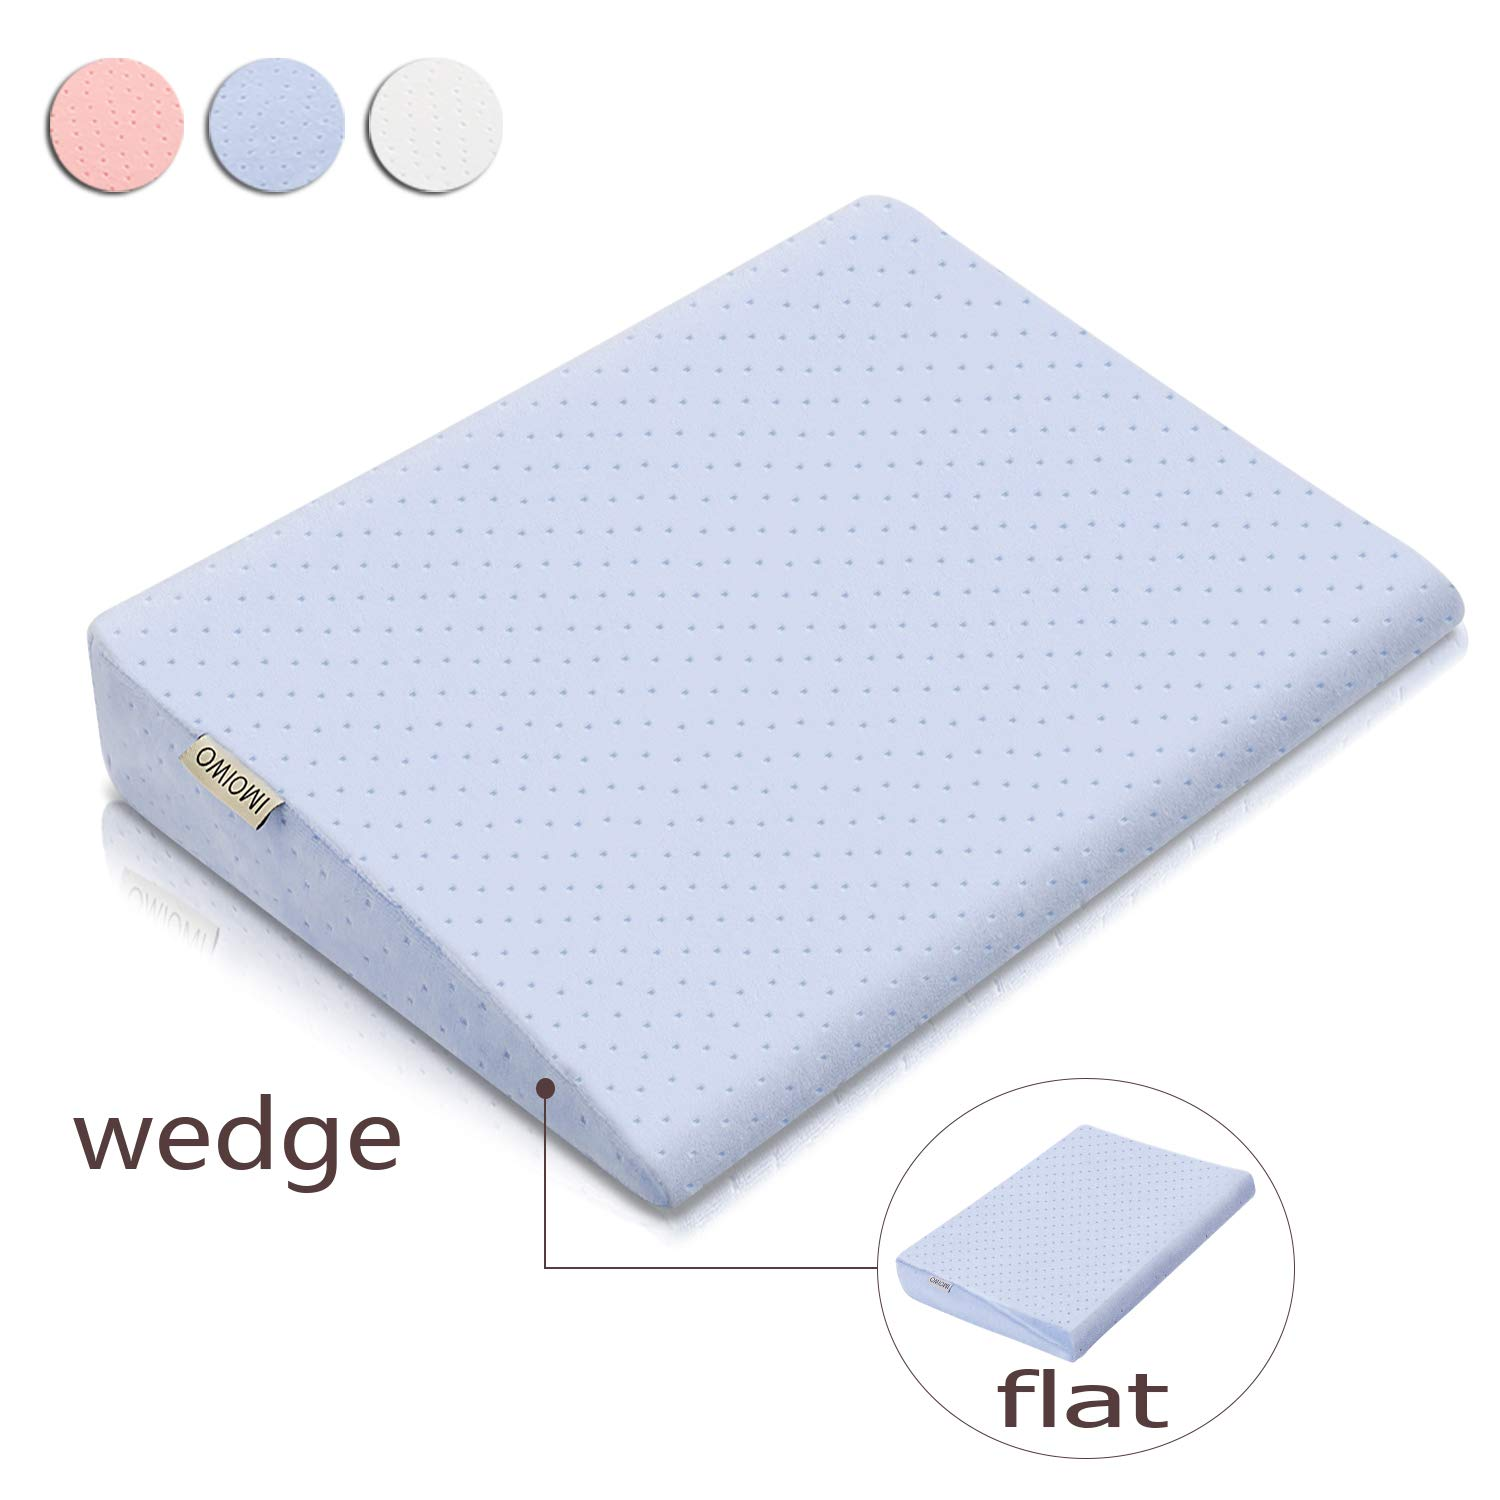 OMIOWI Crib Wedge for Reflux Baby, Wedge & Flat Pillow 2 in 1, for Infant, Newborn, Waterproof & Movable Cover, Memory Foam (Blue)